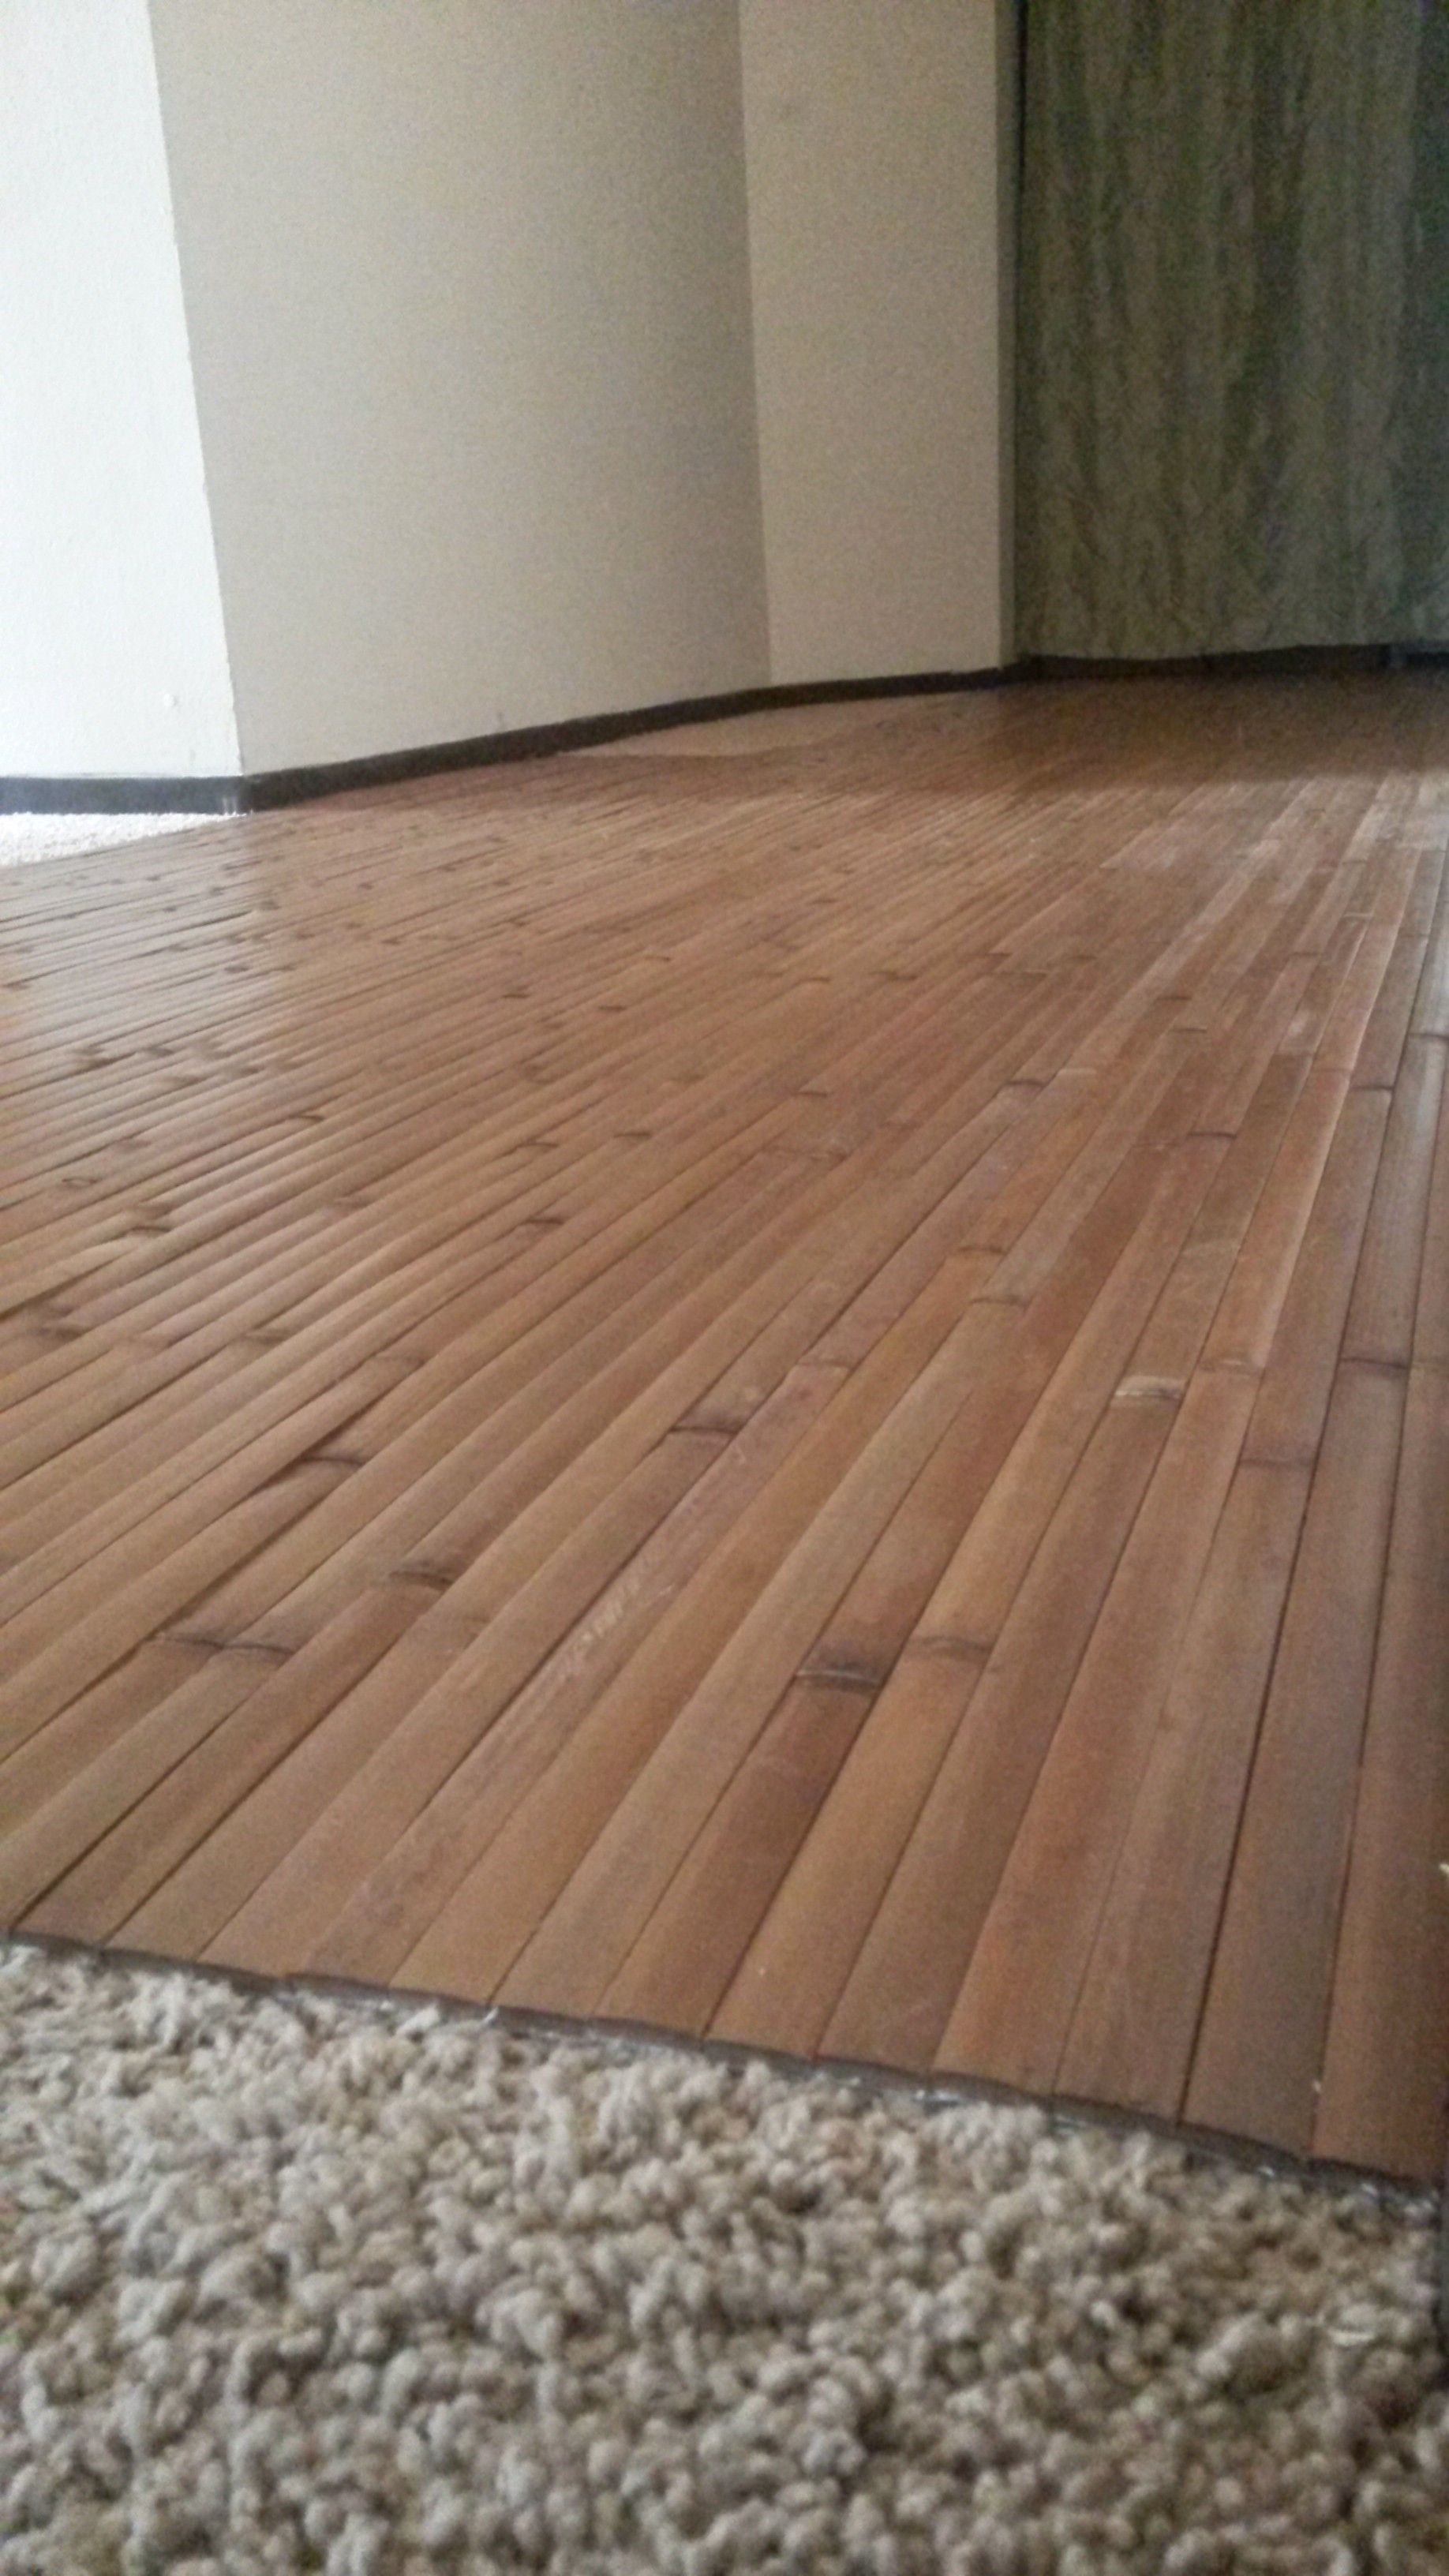 Temporary Wood Flooring For Renters And That Means You Are Trying To Select What Kind Of Temporary Flooring Wood Floors Wide Plank Laminate Hardwood Flooring